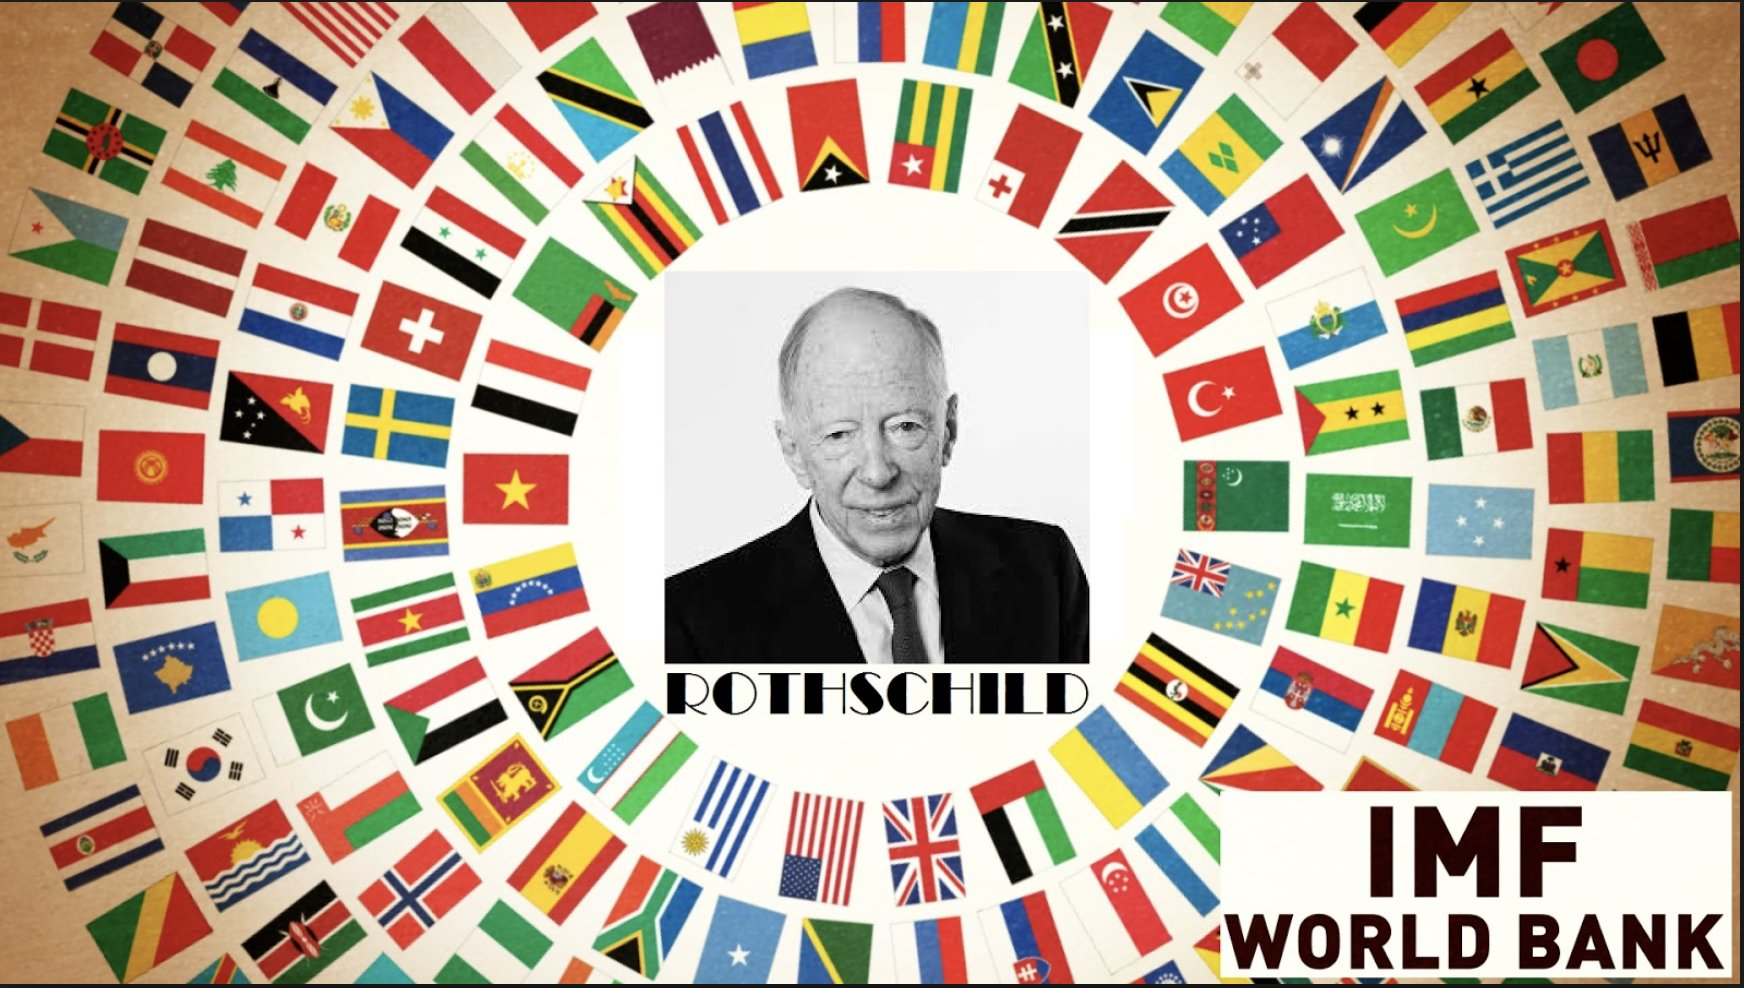 How the Rothschild Control the World & the IMF & World Bank!